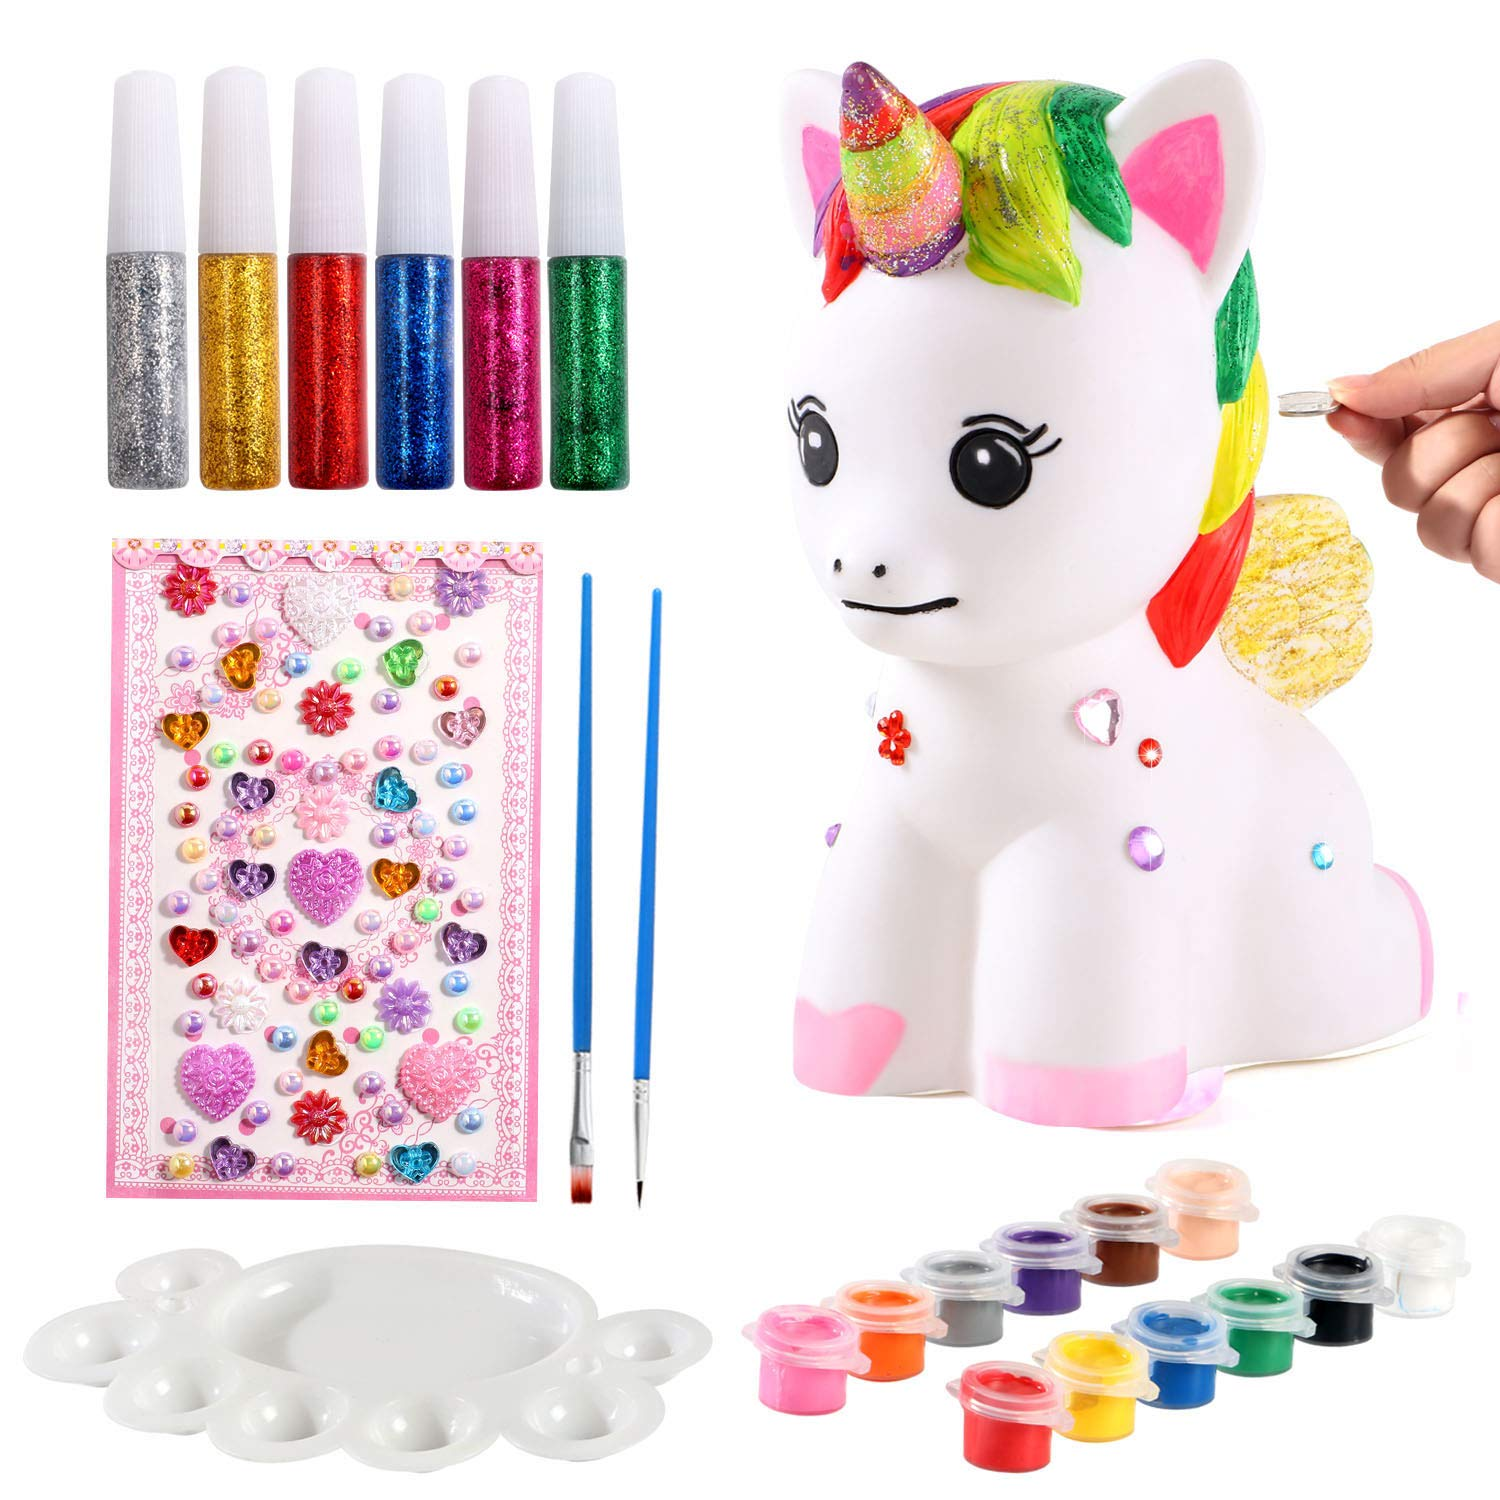 ACEHOOD Unicorn Gift for Girls Paint Your Own Unicorn DIY Craft Paint Art Supplies Unicorn Piggy Bank Coin Bank Unicorn Painting Kit Birthday Gift for Kids by ACEHOOD